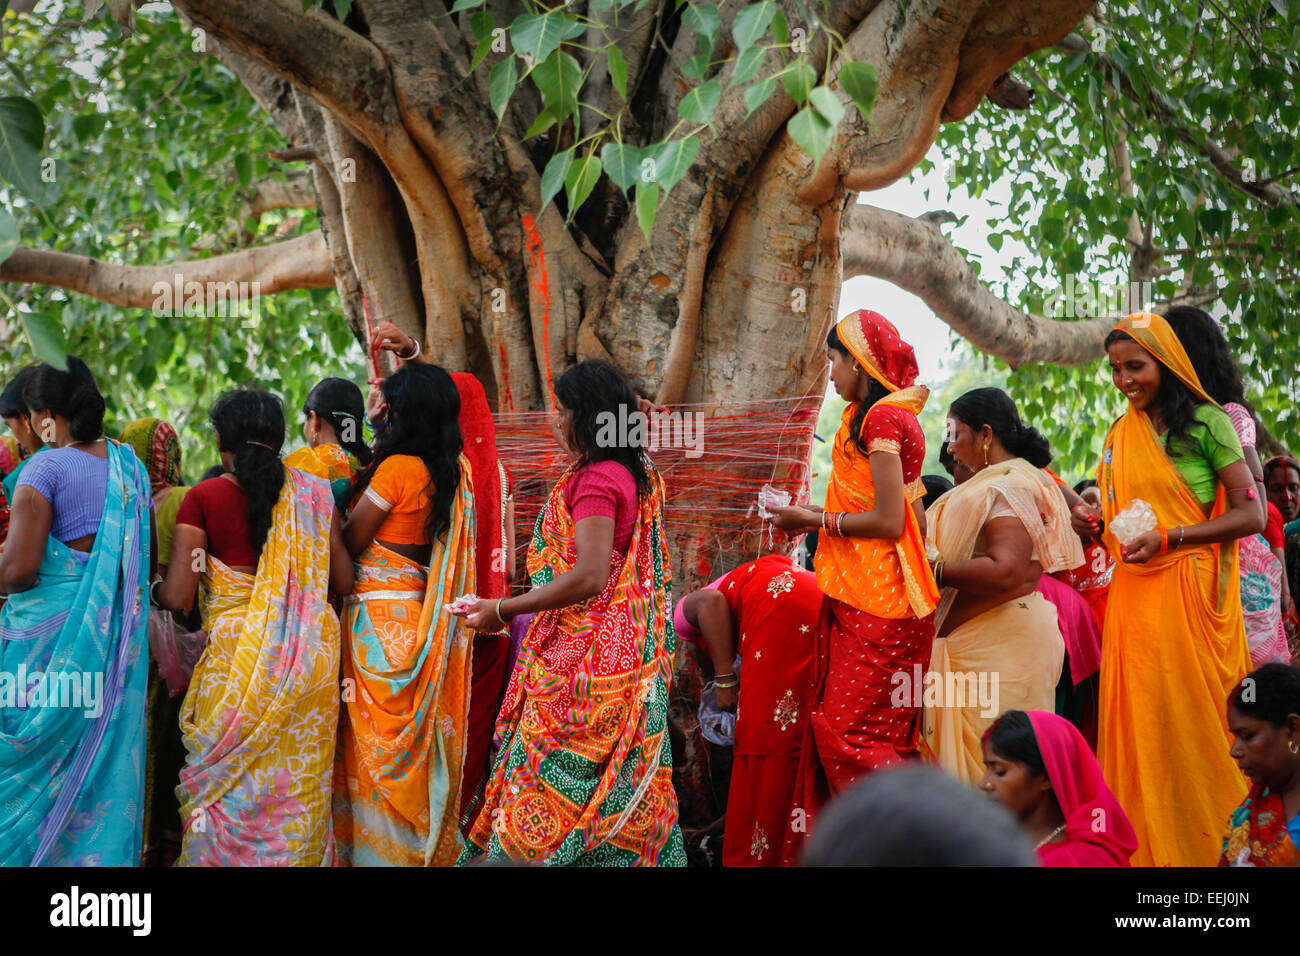 Women encircle holy bodhi tree in Lakshmi Narayan Temple complex in Rajgir. - Stock Image